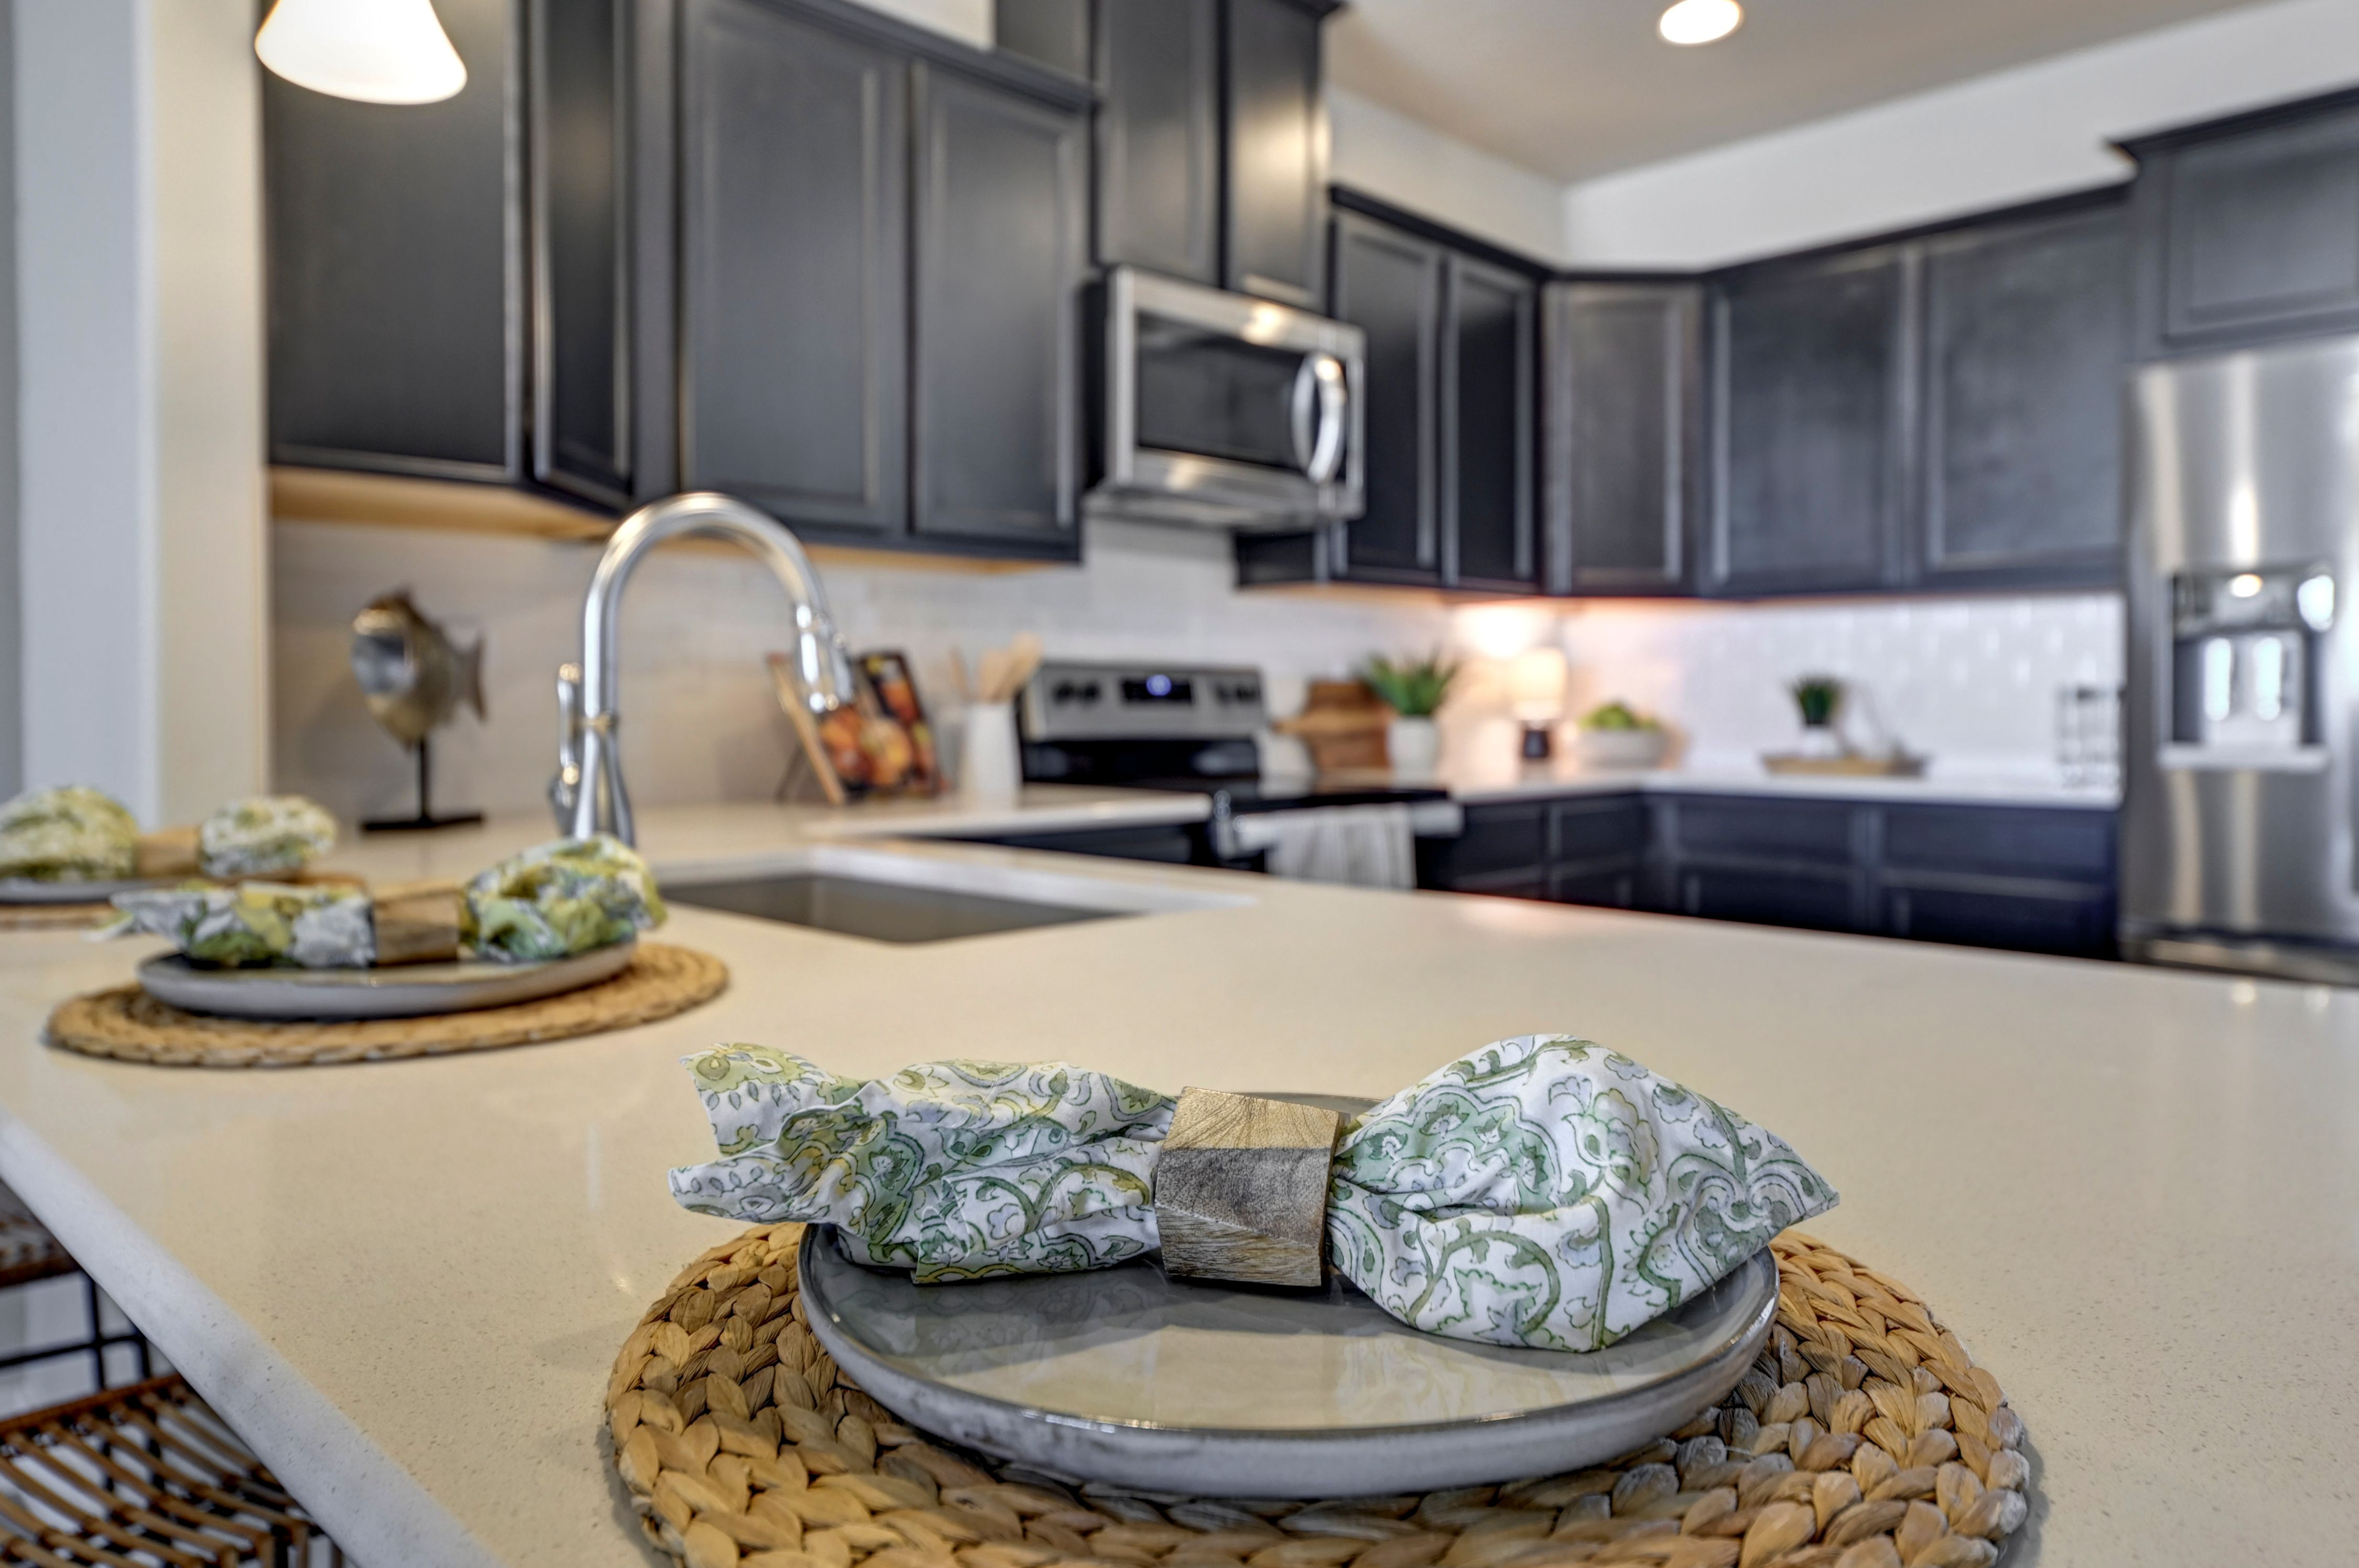 Kitchen featured in the Jones By Adamo Homes in Colorado Springs, CO